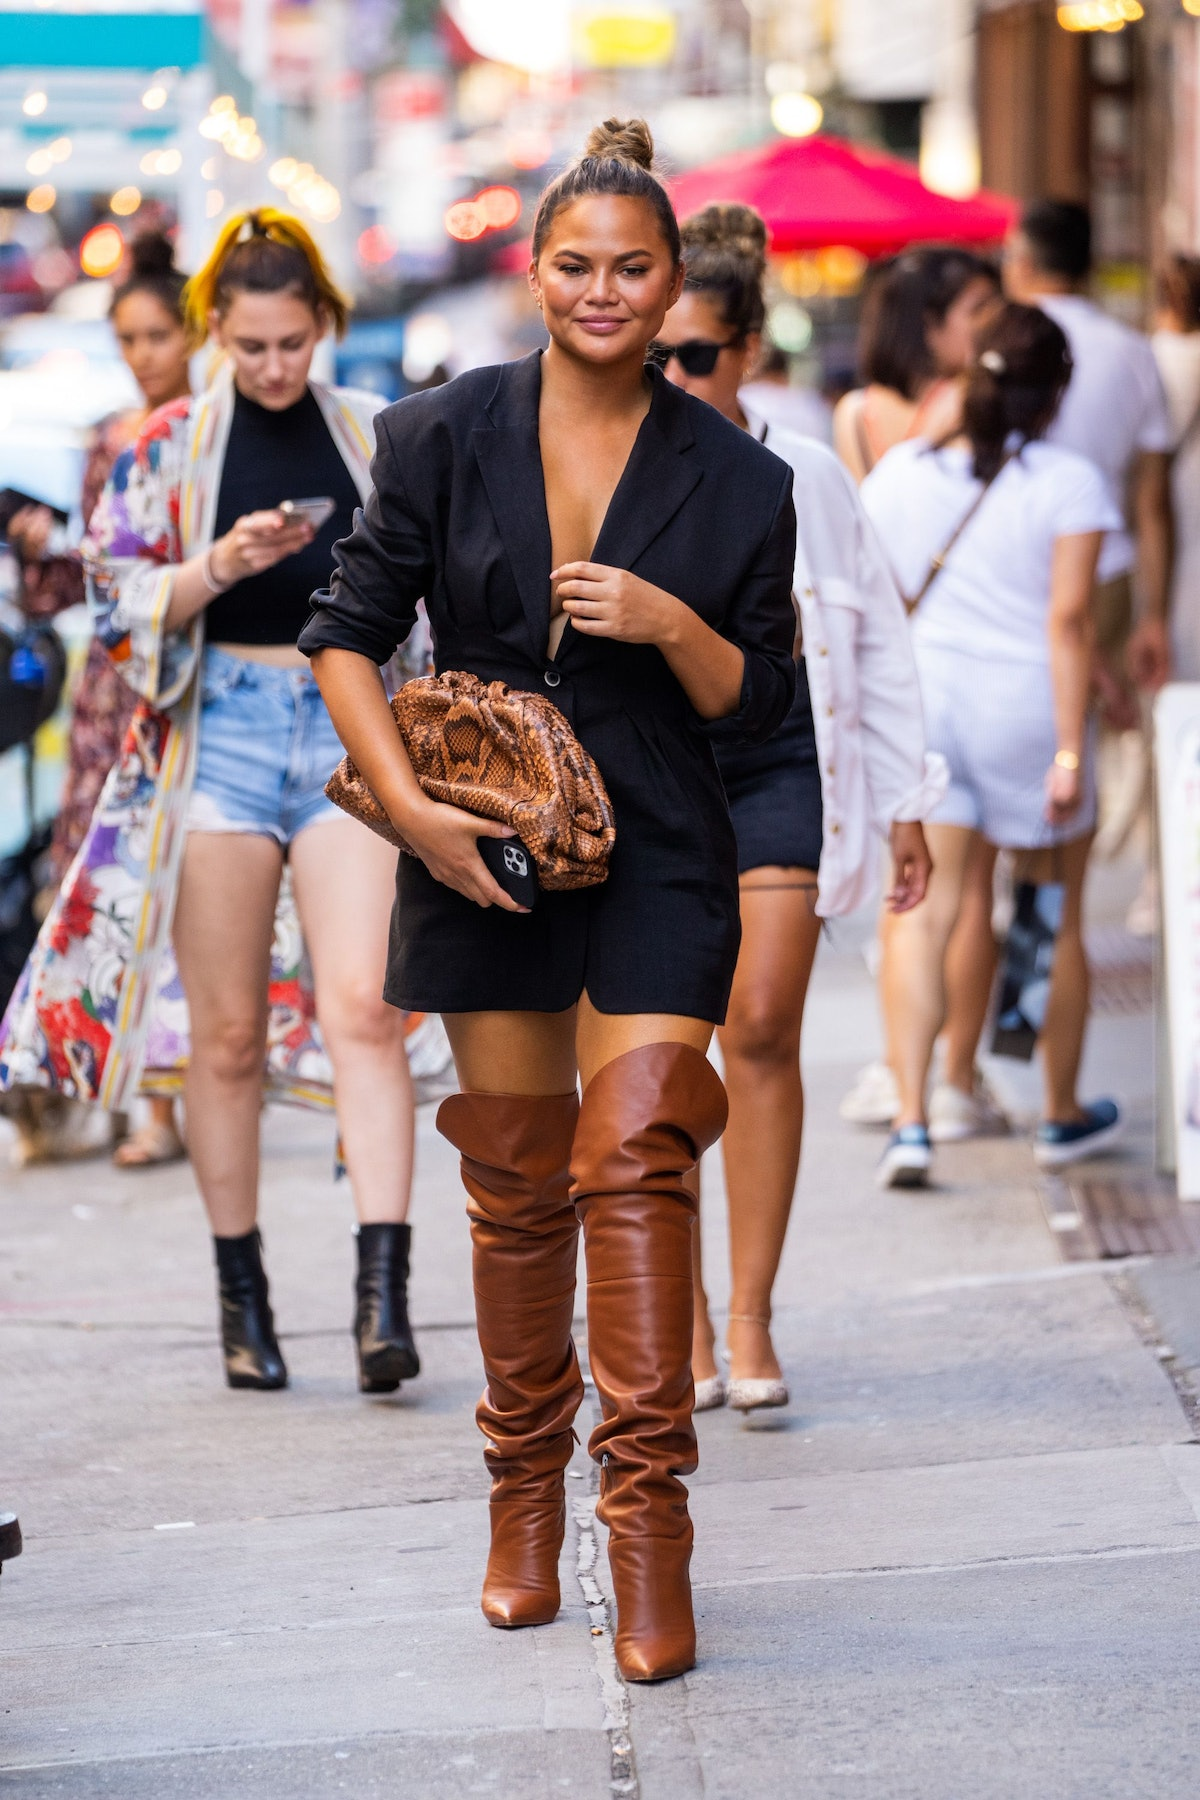 Chrissy Teigen is seen in SoHo wearing a black outfit with boots in July 2021.